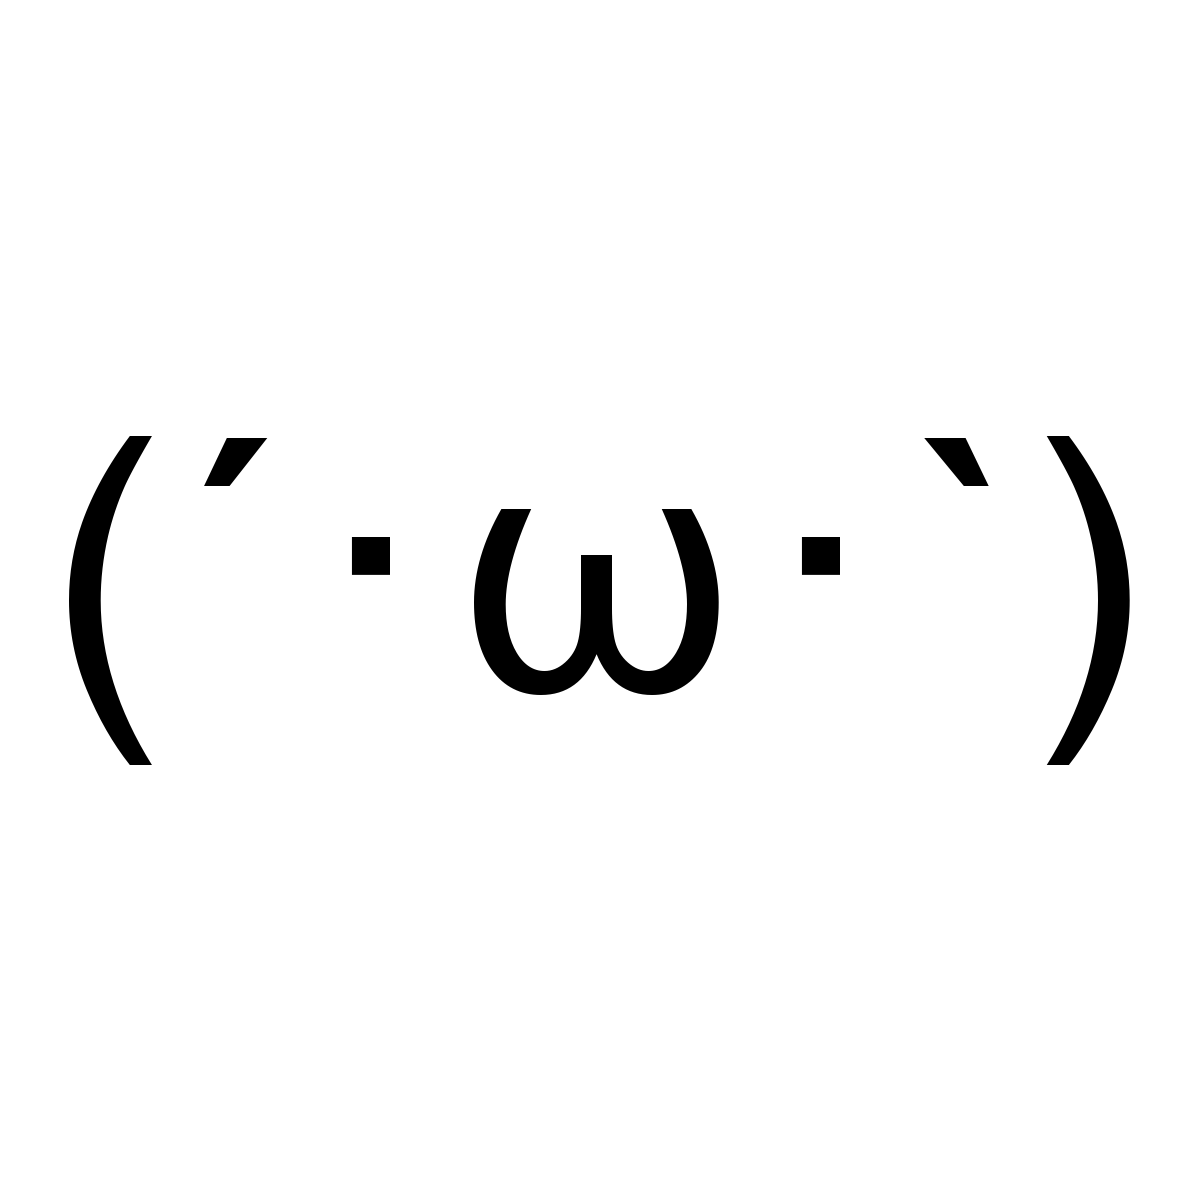 Lists of Japanese emoticons, text faces, dongers, and